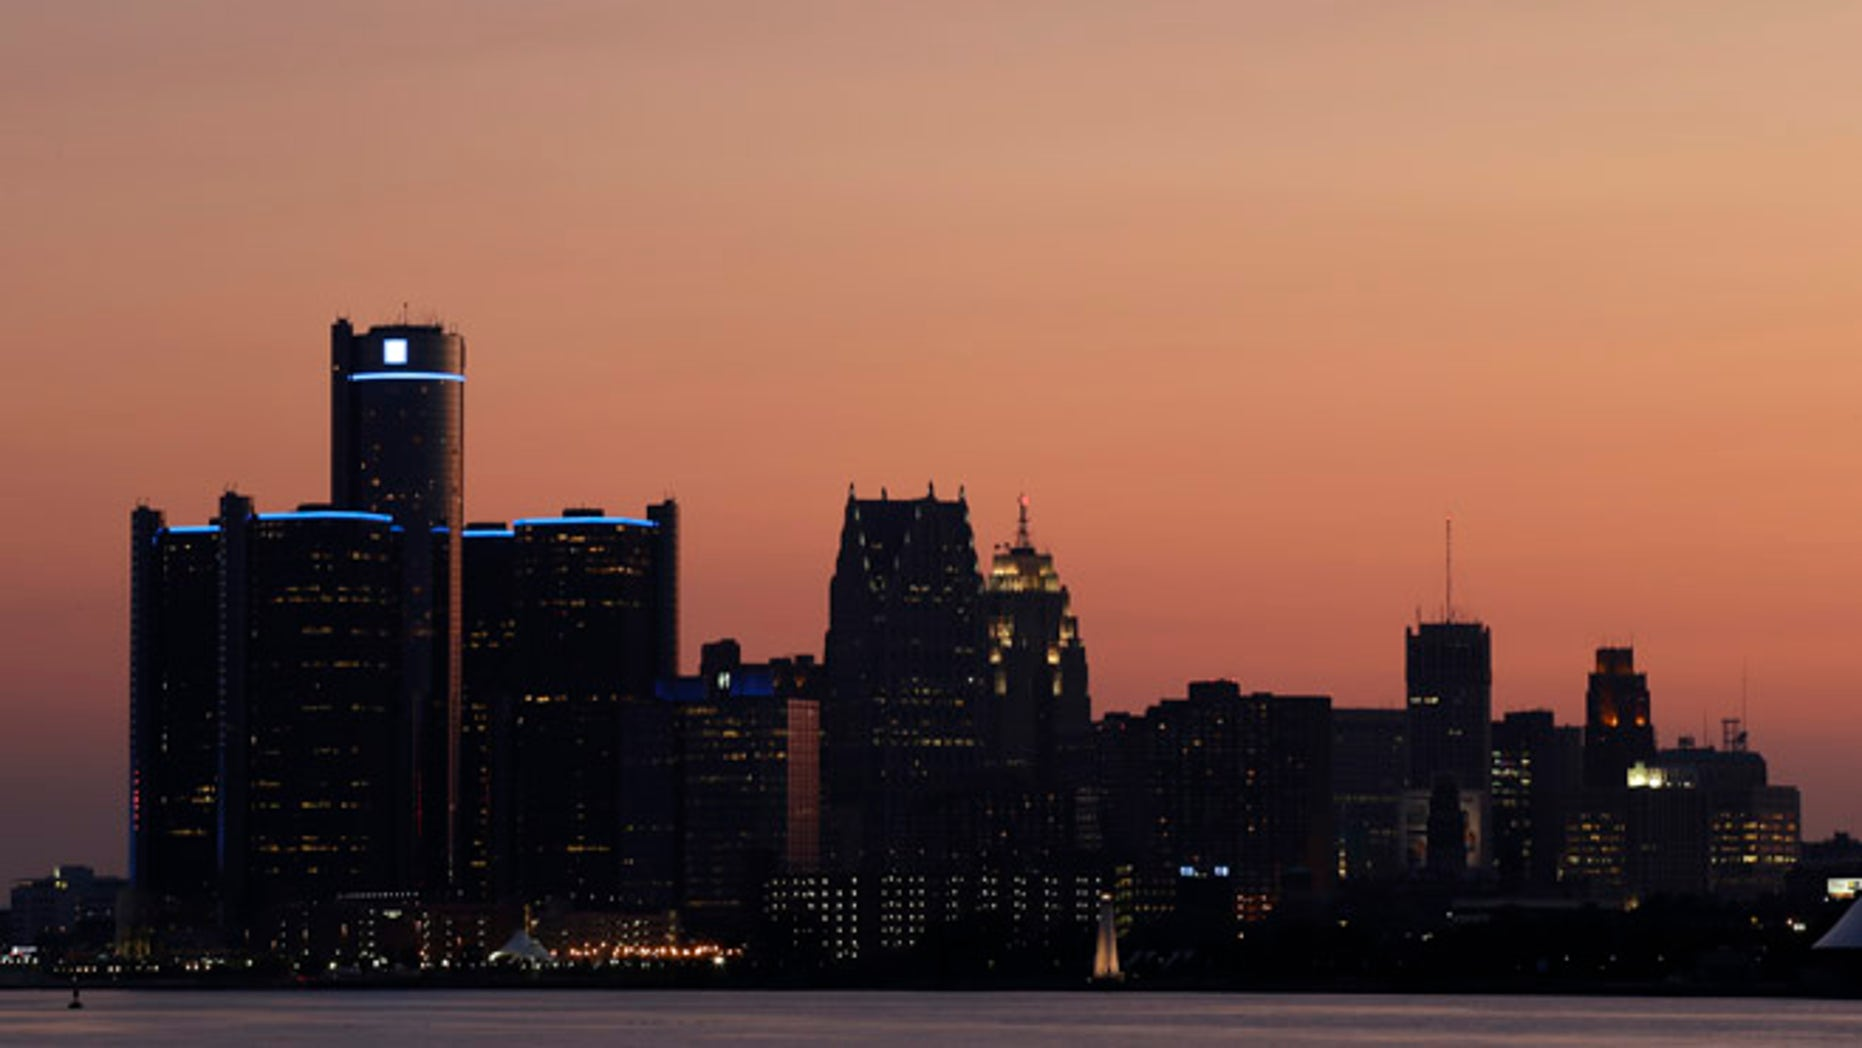 July 18, 2013: The sun sets on Detroit.